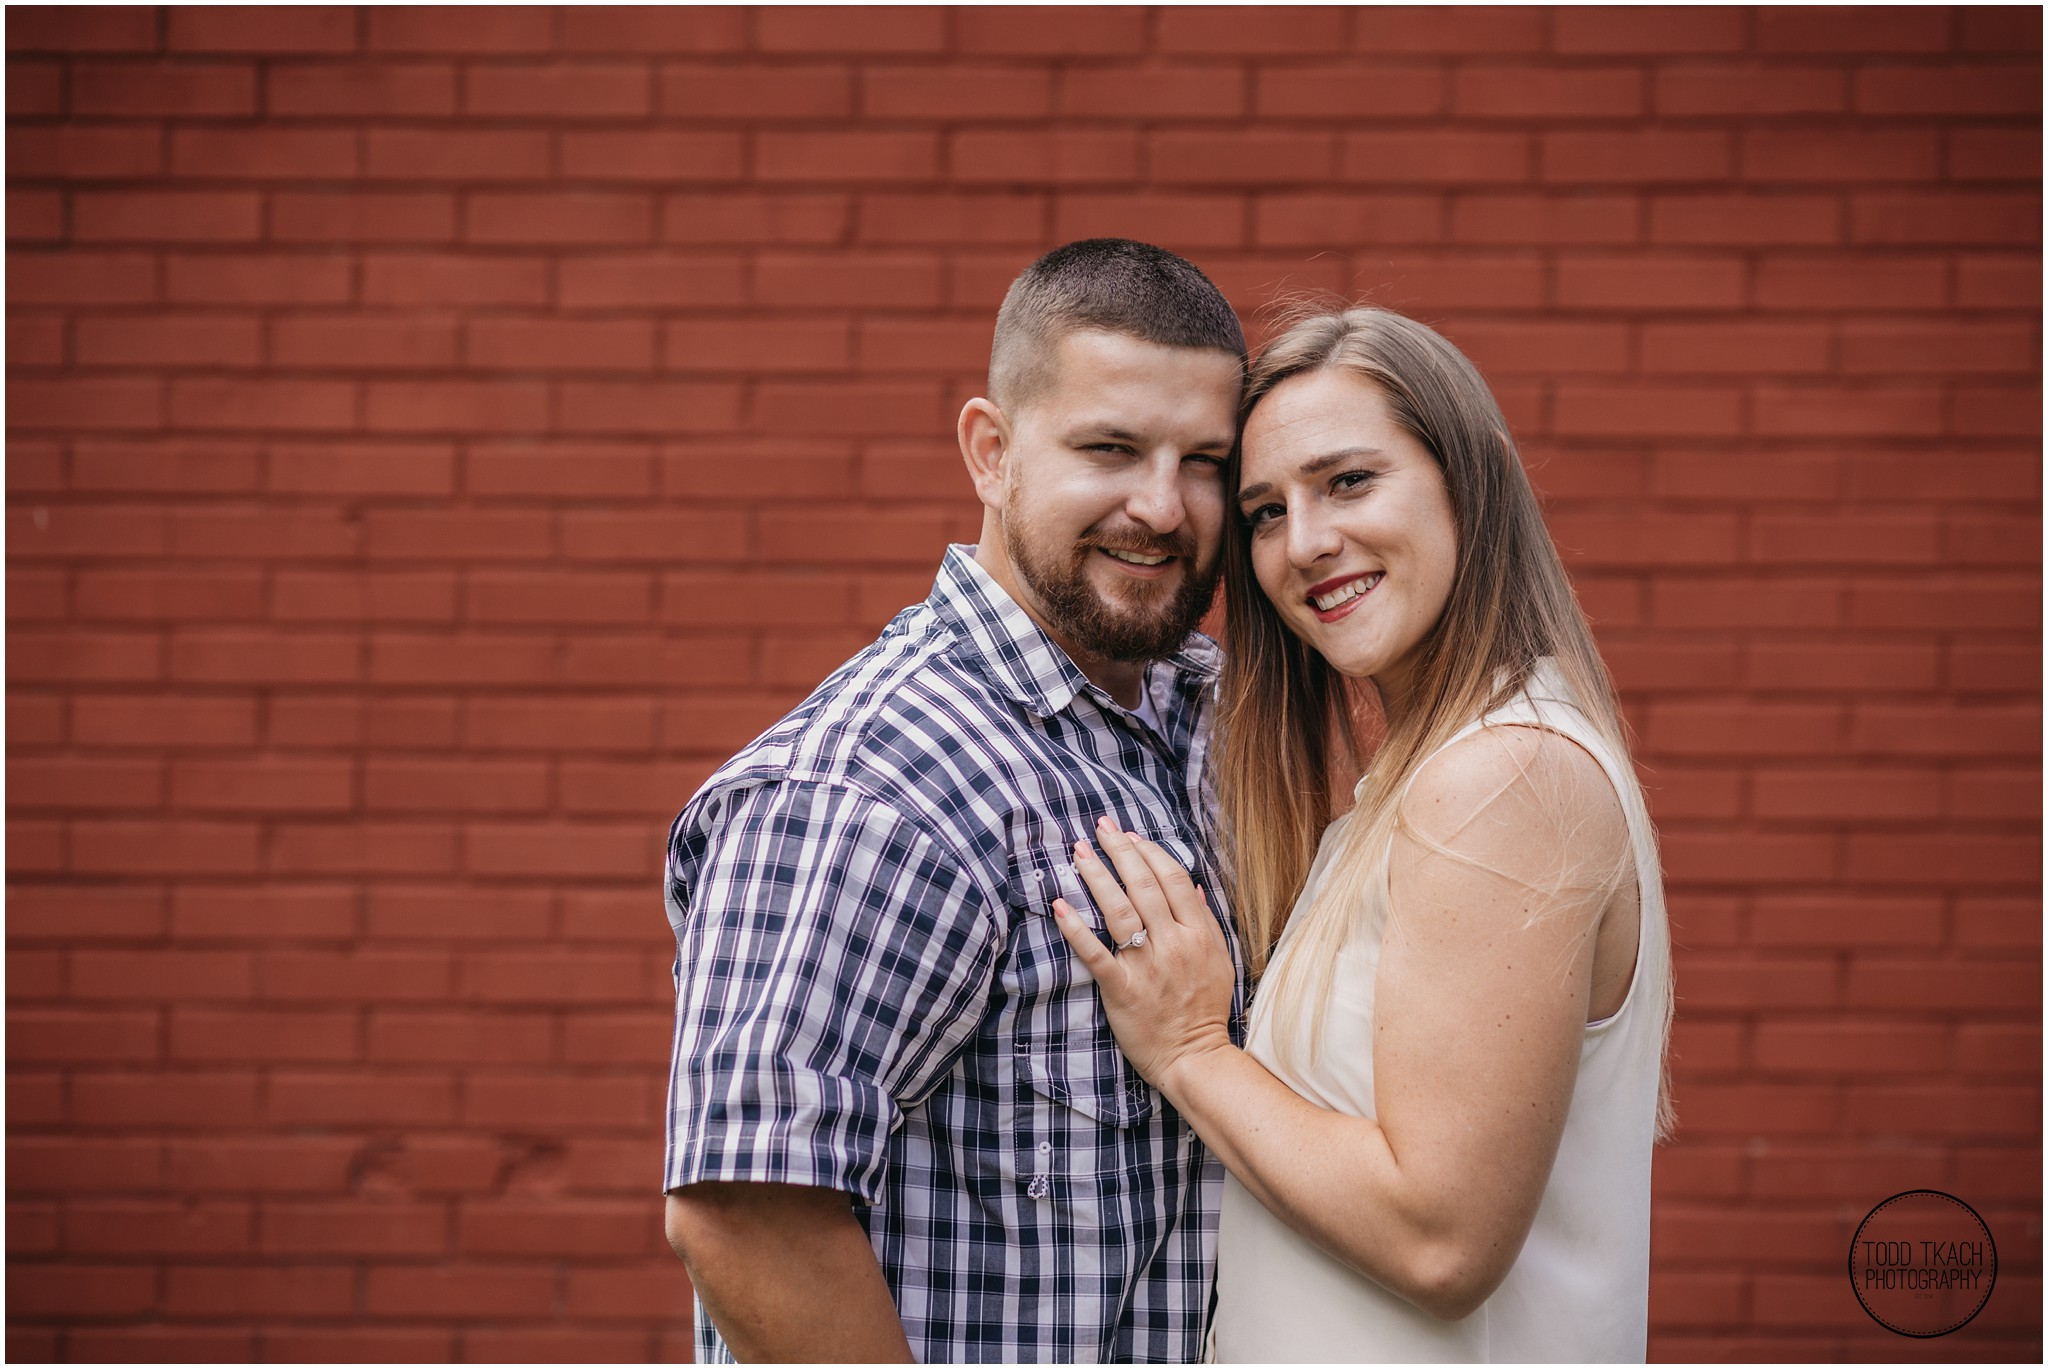 Kim & Brandon Engagement - Red Brick Portrait